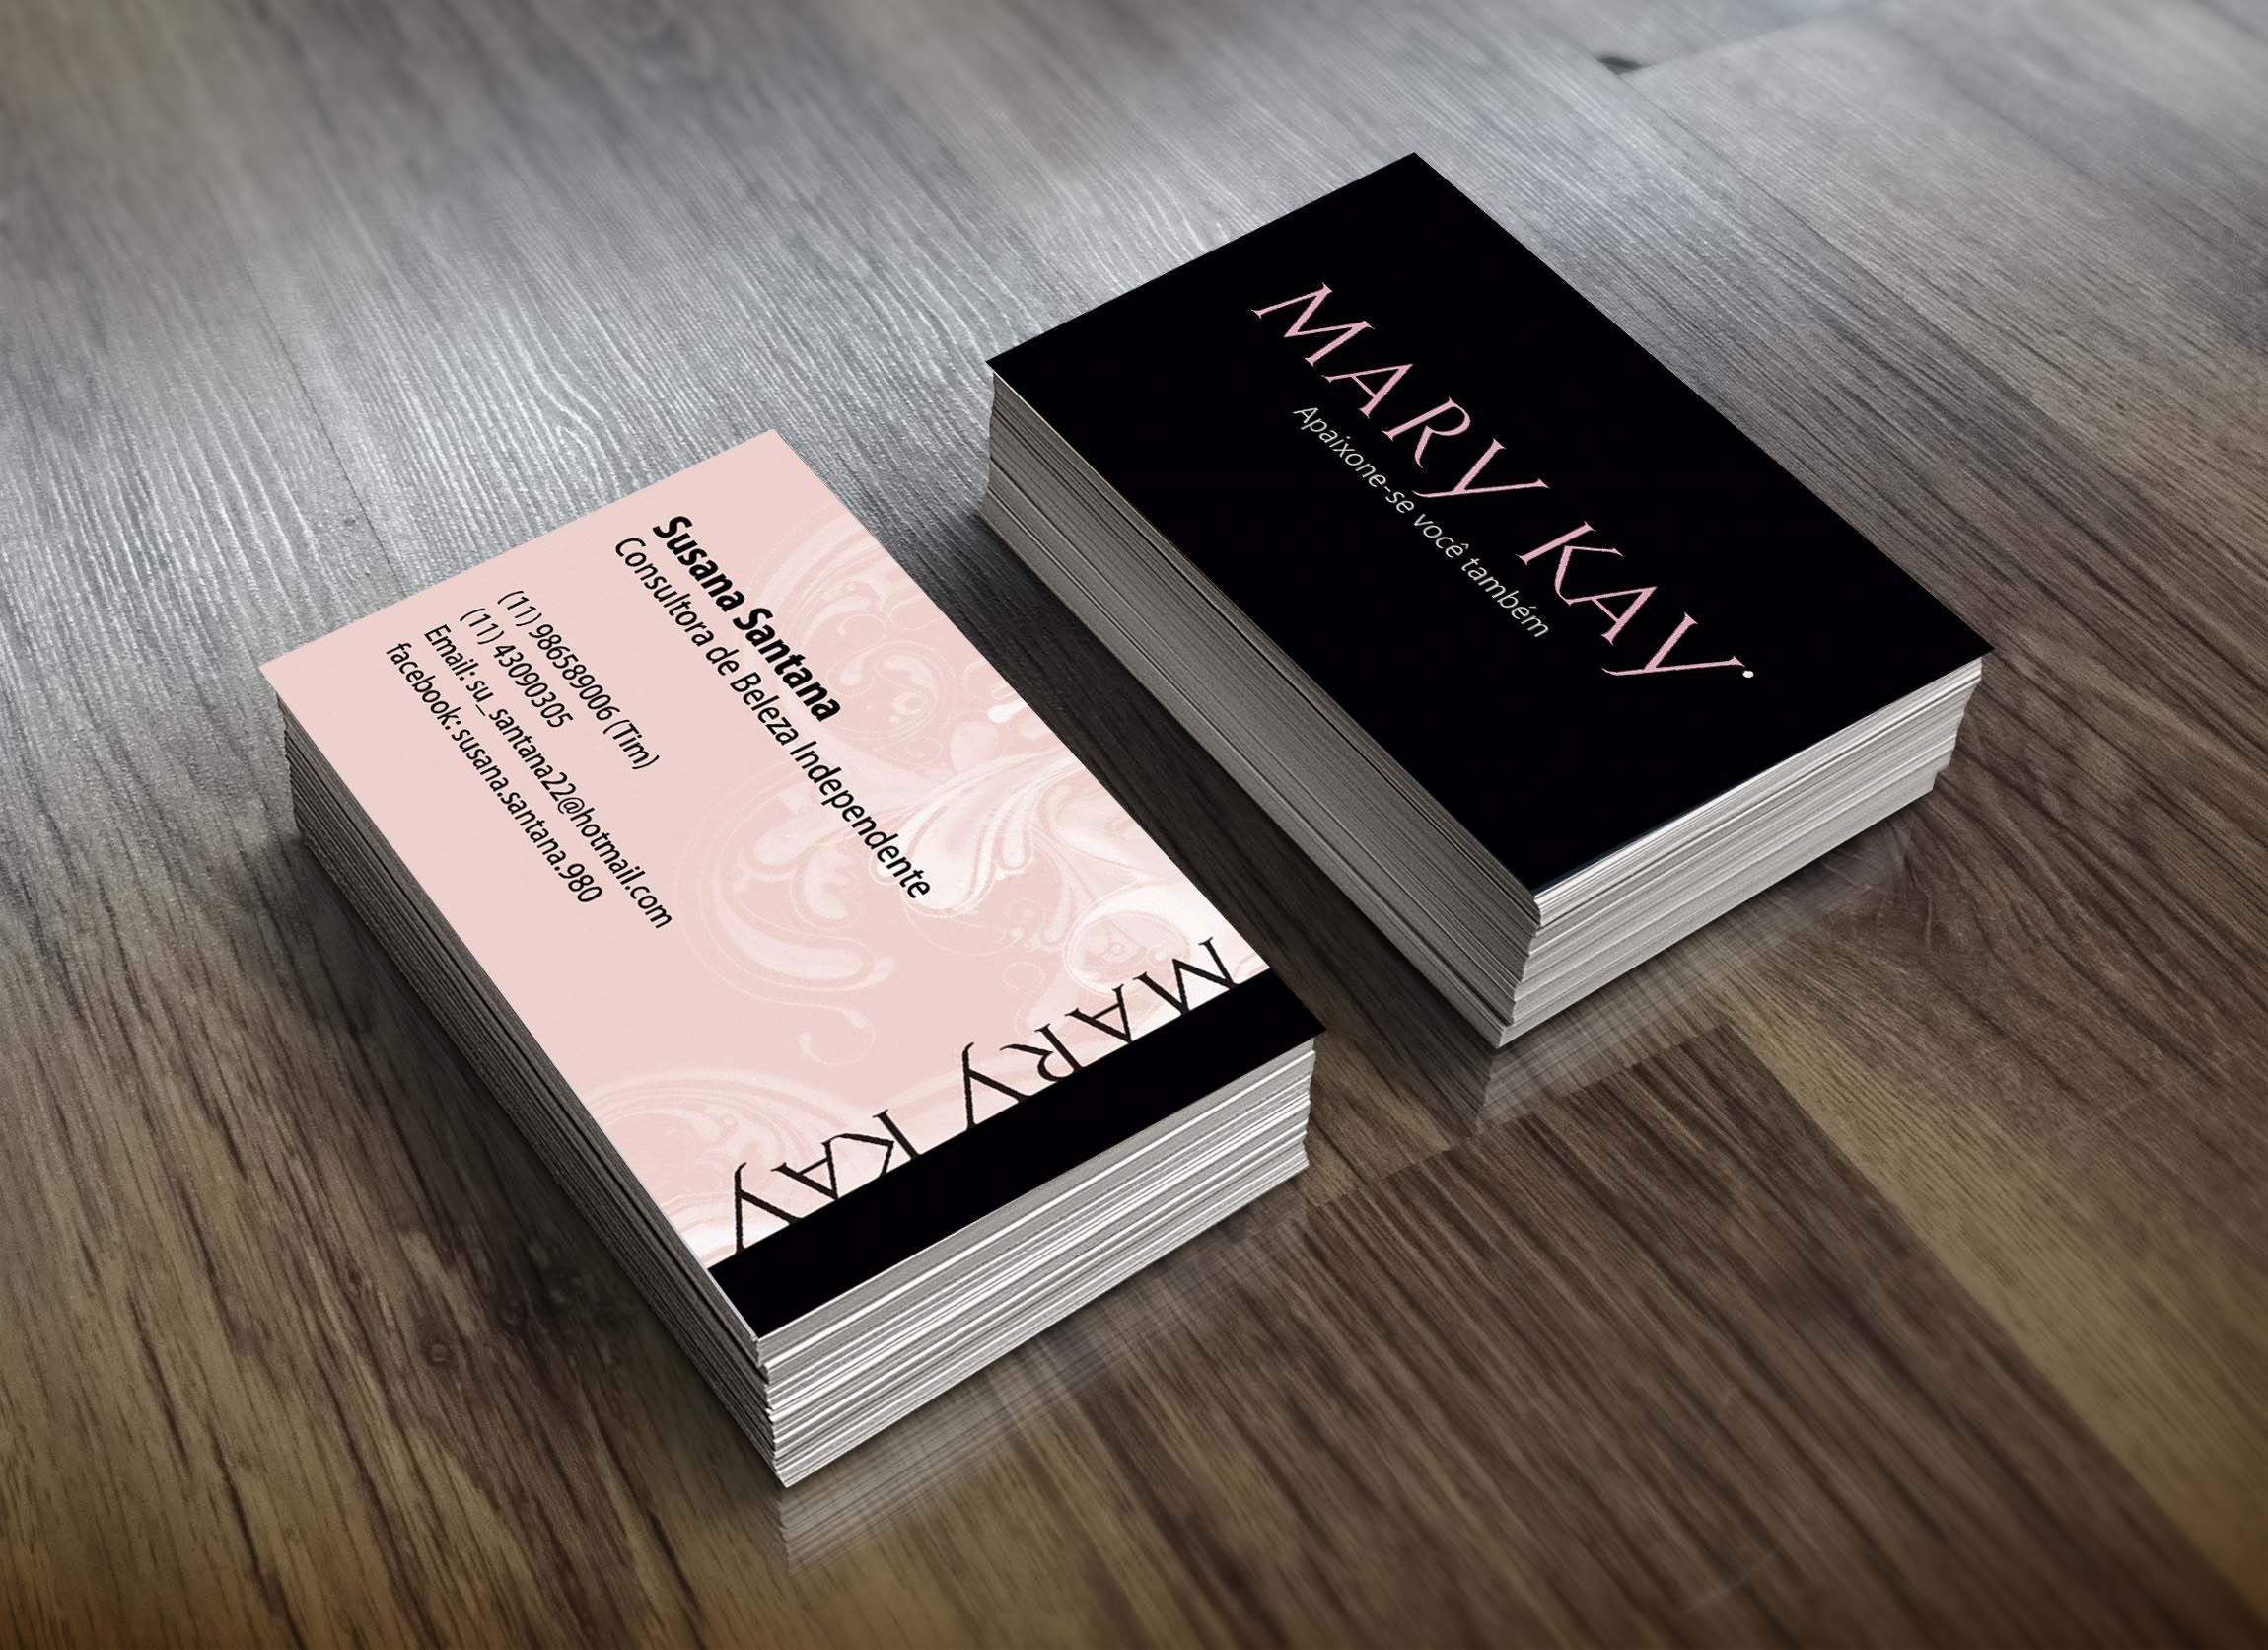 Carto de visita mary kay mi mk pinterest mary kay mary and carto de visita mary kay business card templatesbusiness cheaphphosting Choice Image